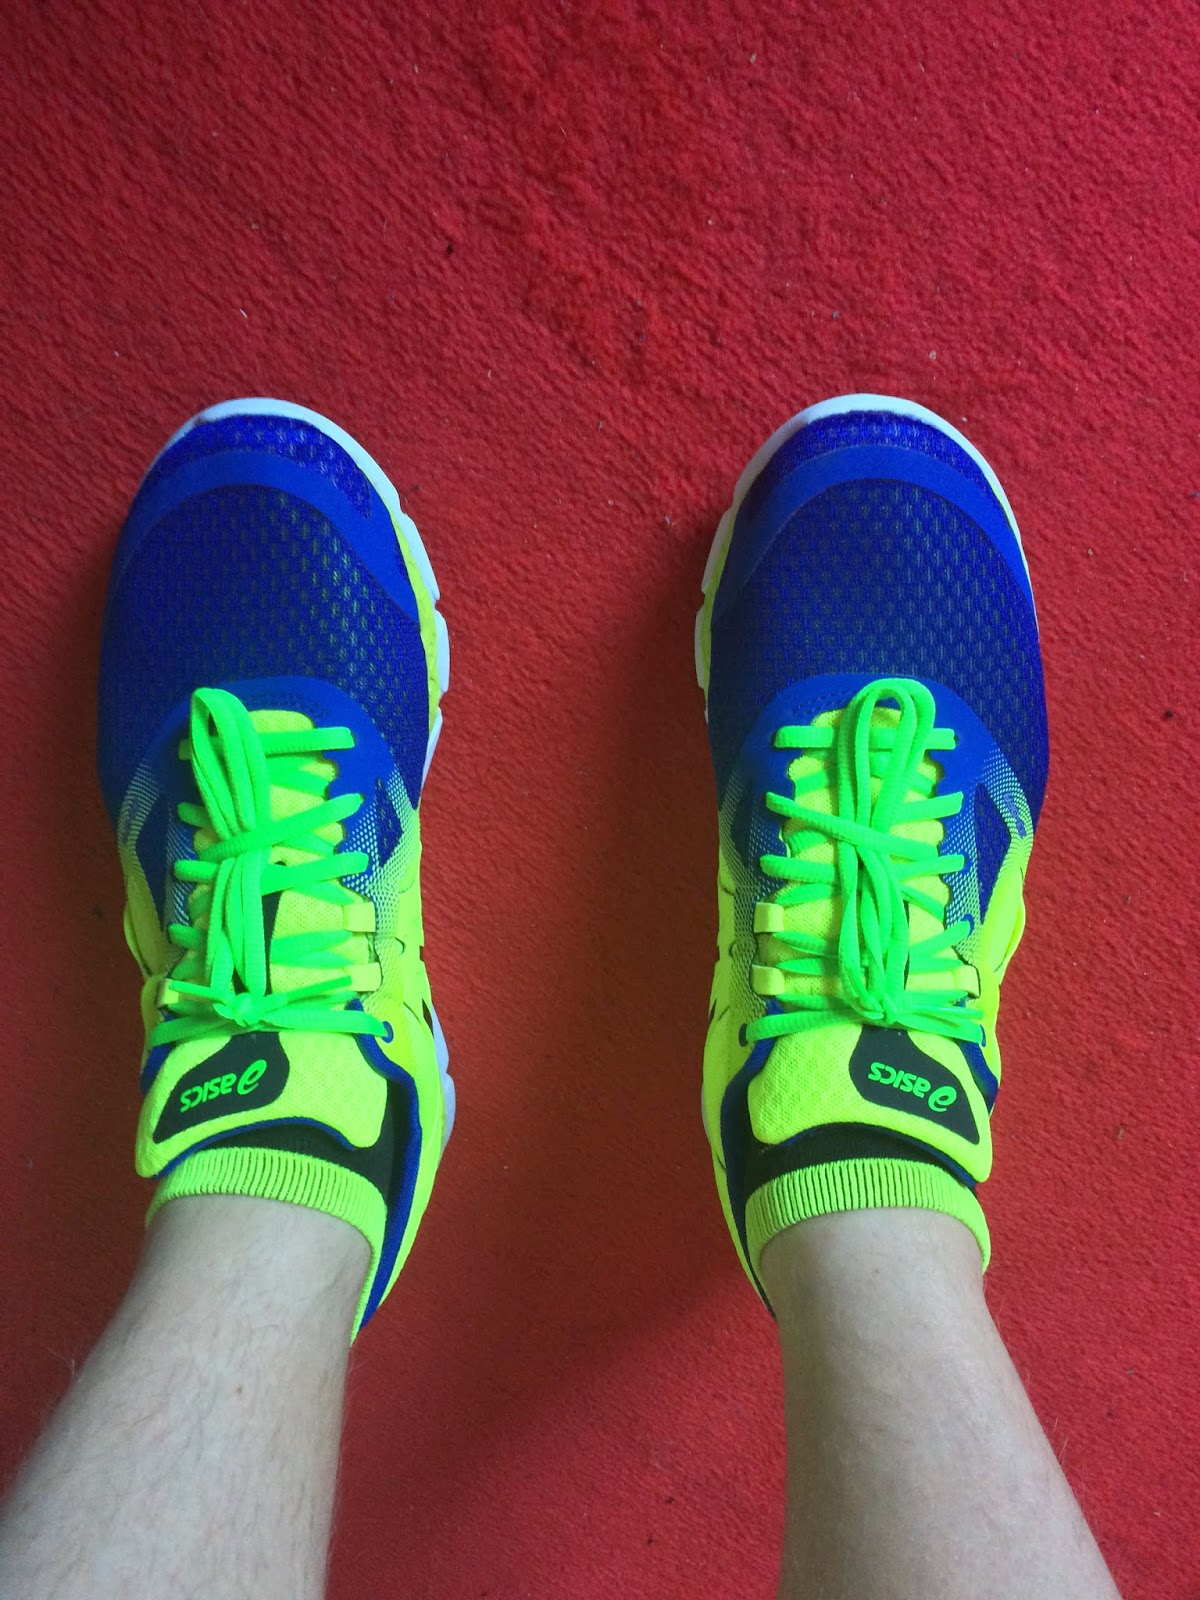 Kitted Asics Me February Out 3rd 2015 78dxU8